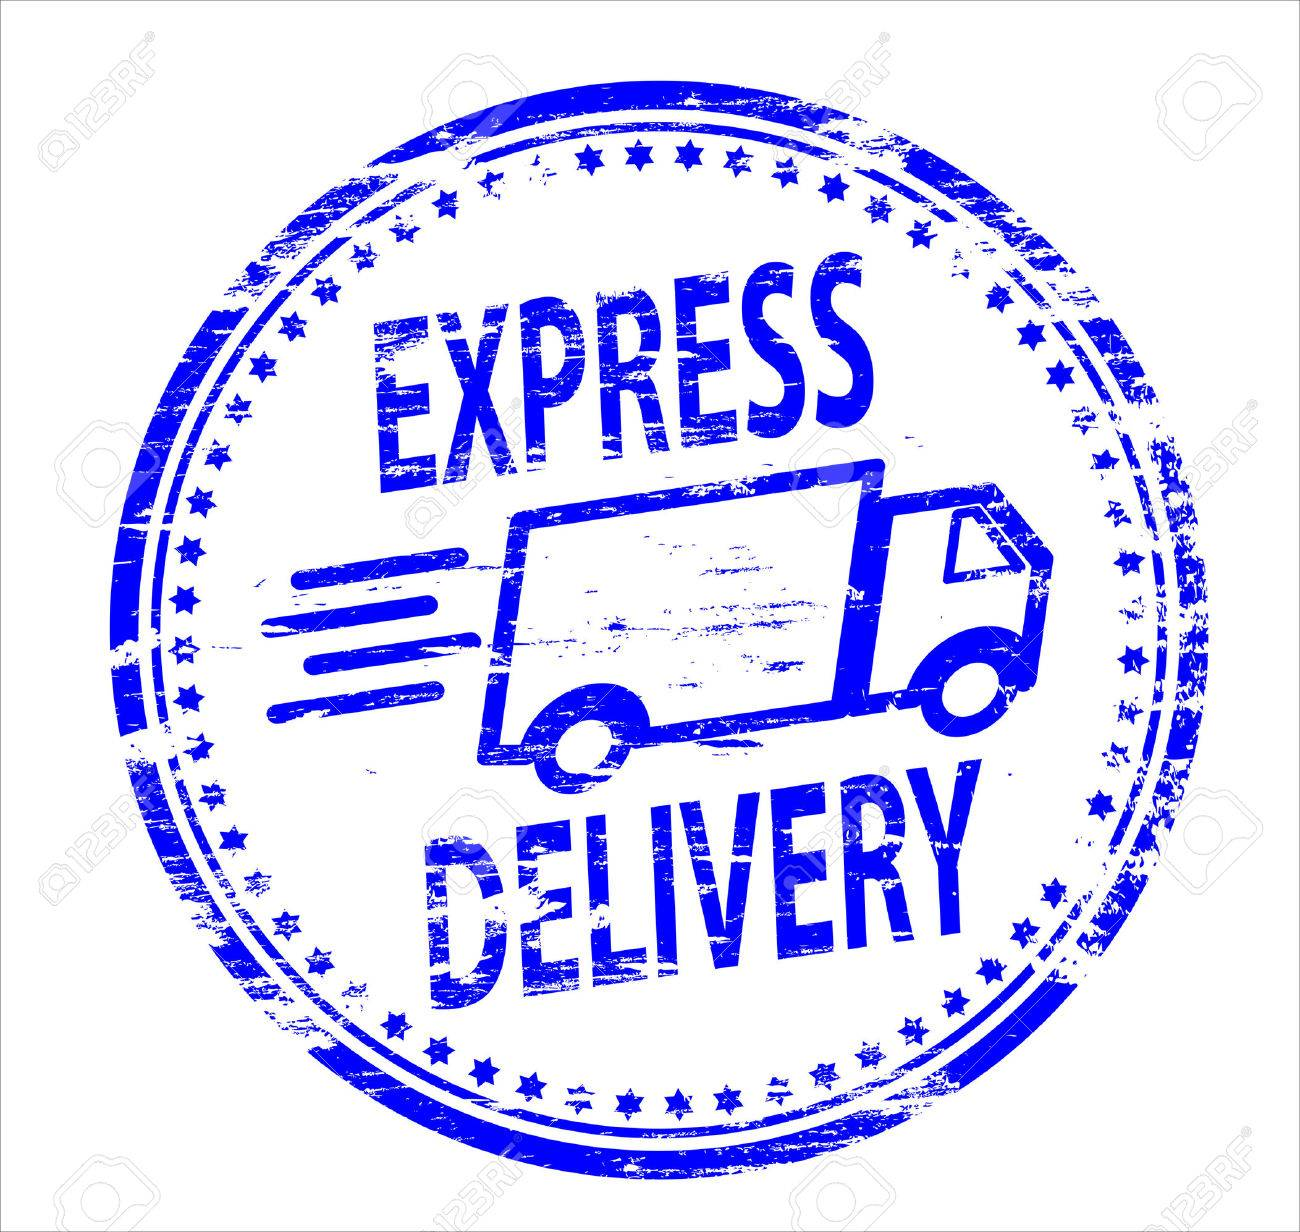 Express - Express Delivery Rubber Stamp Stock Vector 8985227